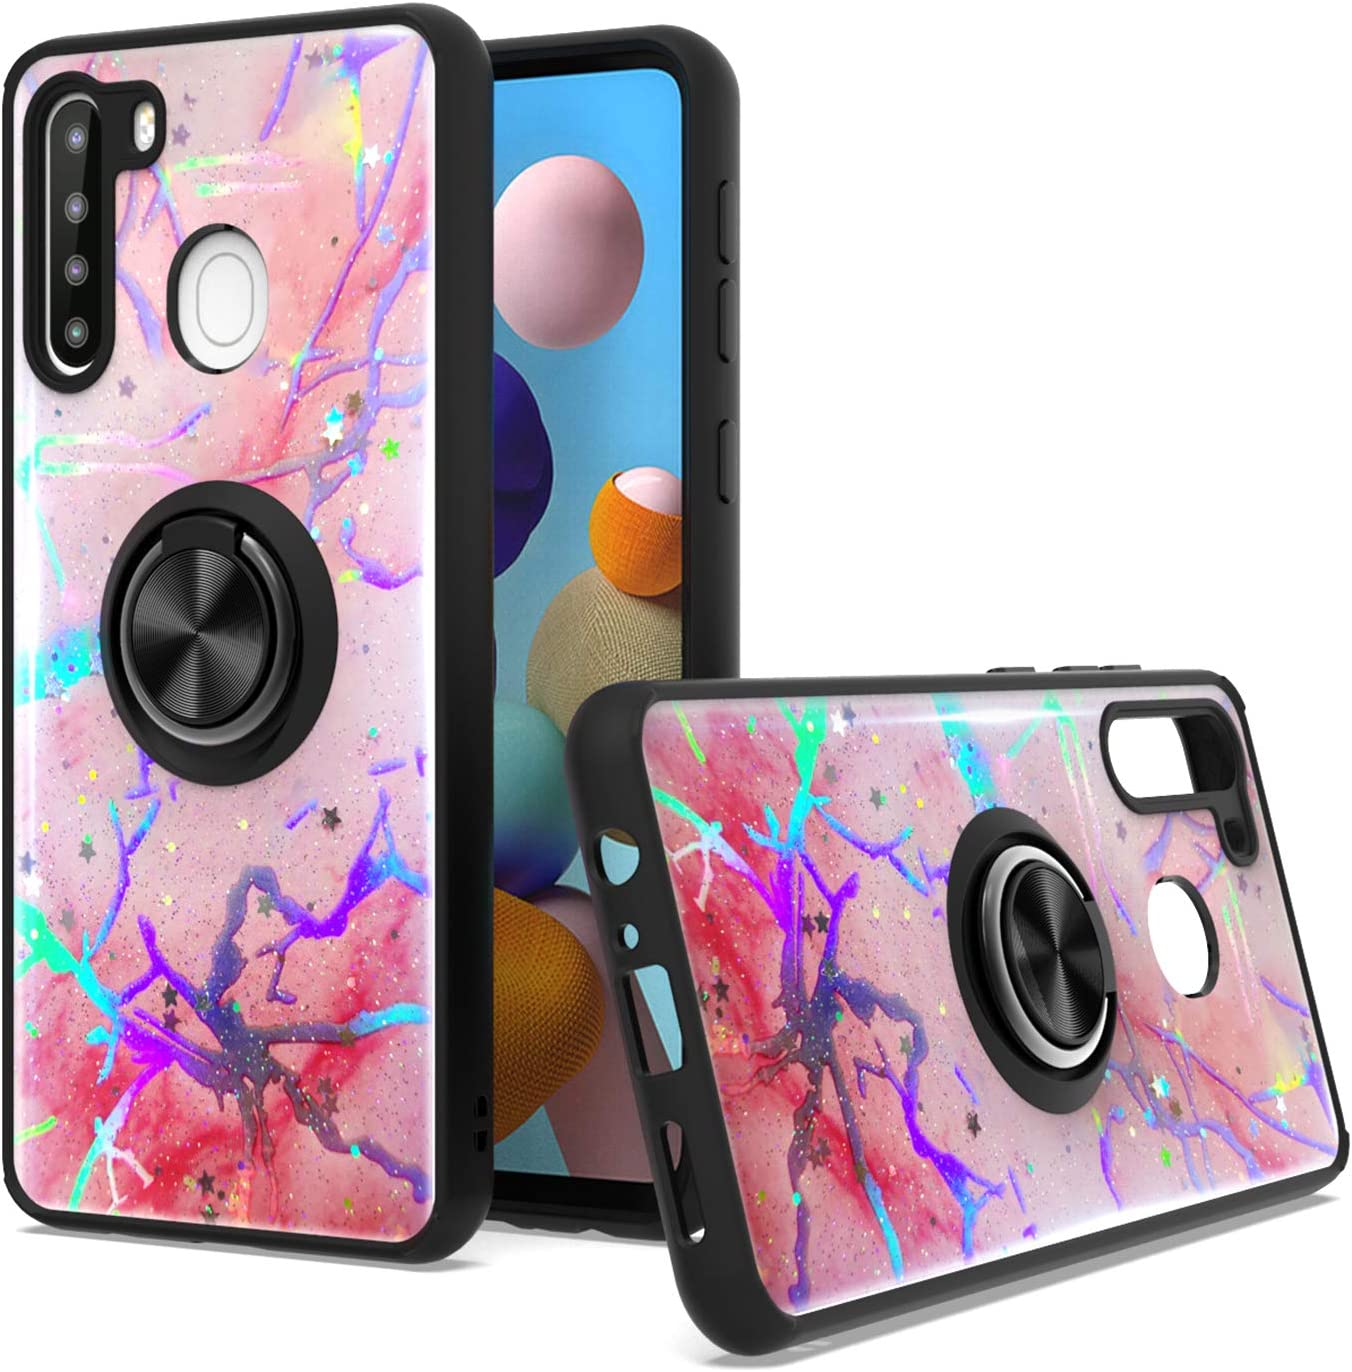 KWEICASE Cell Phone Case for Samsung Galaxy A21, Samsung A21 Case Soft Bumper Heavy Duty Hybrid Glitter Shockproof Protective Cover Case with Magnetic Ring Kickstand Holder, Pink Marble